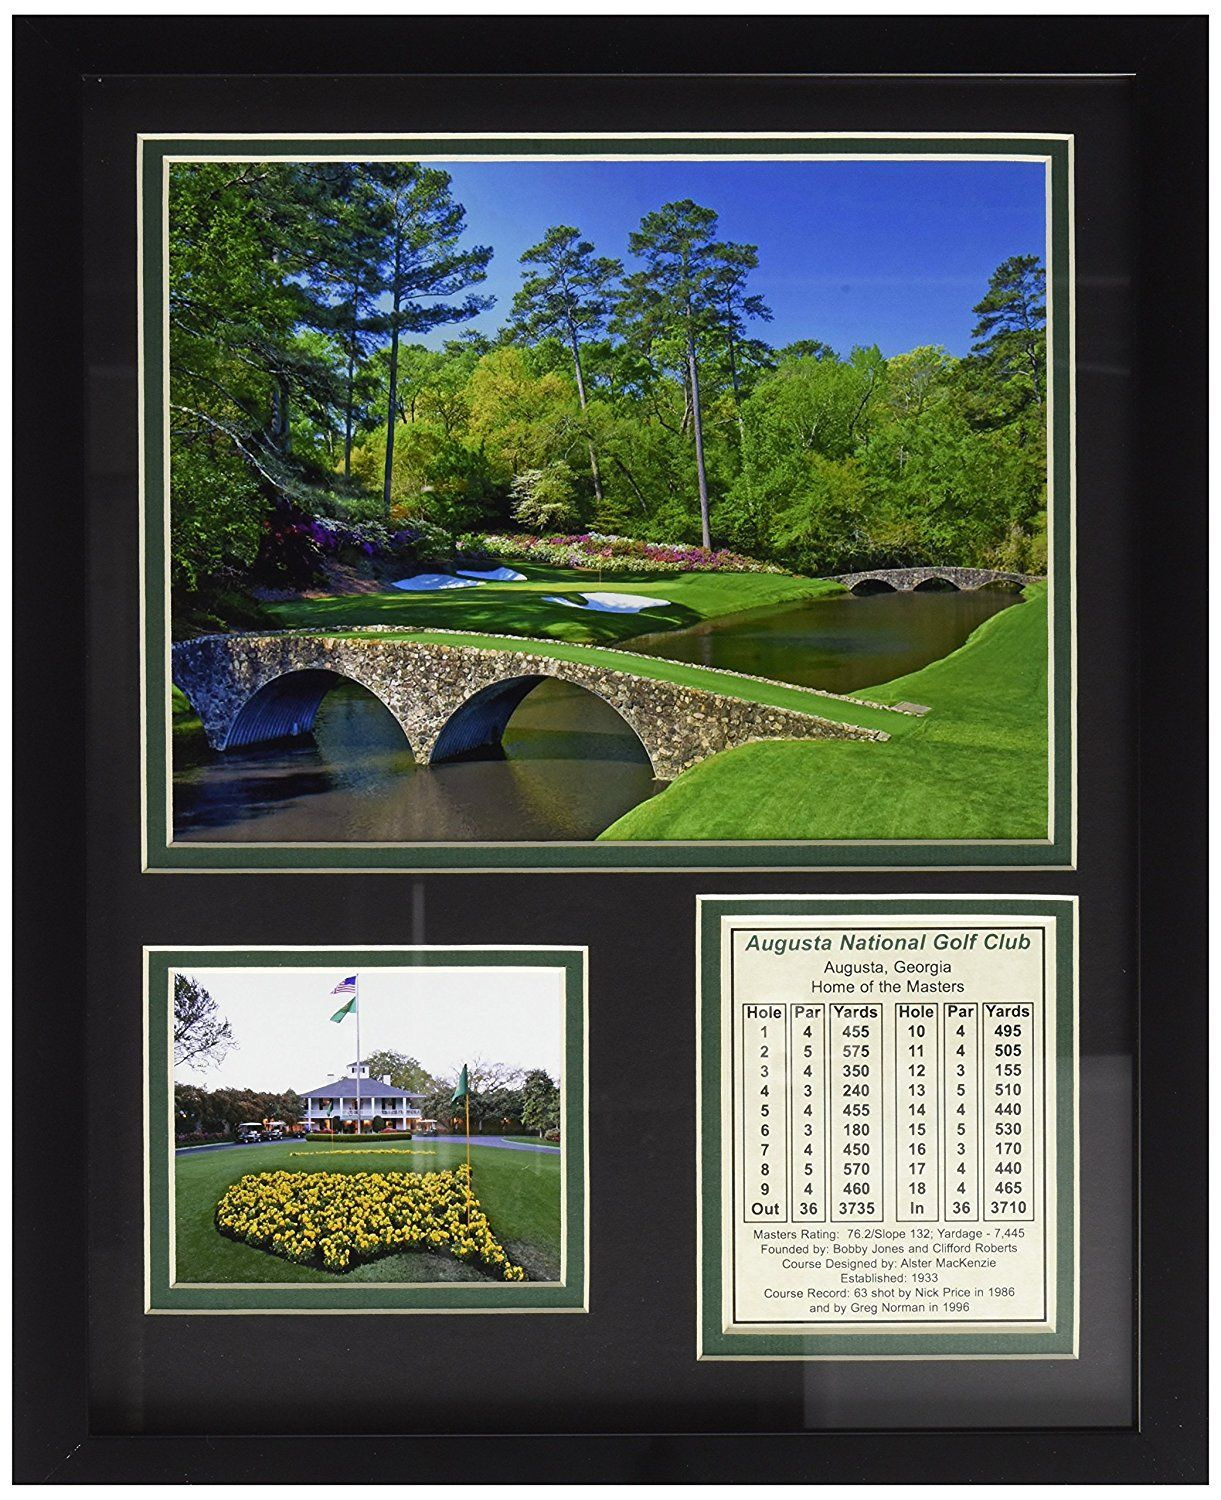 Augusta National Golf Course 11 X 14 Framed Photo Collage By Legends Never Die Inc Want Additional Info Framed Photo Collage Photo Collage Golf Courses